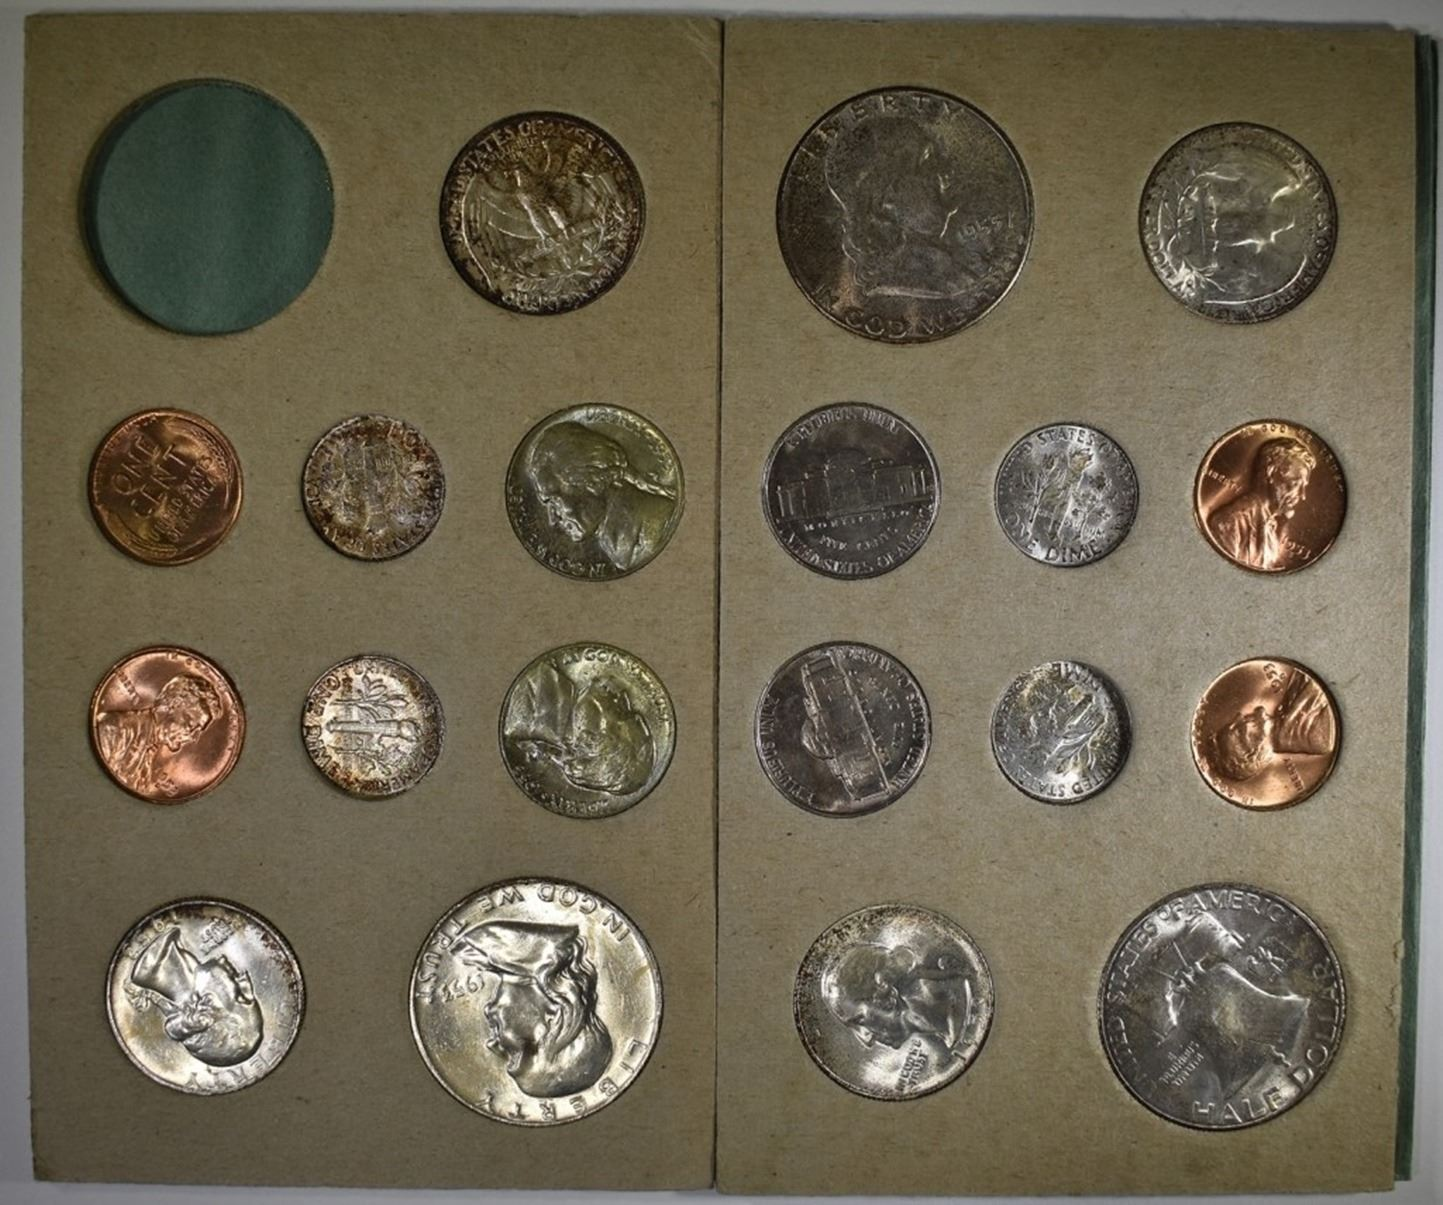 Mint Set 1953 D S Partial Mint Set Original Silver City Auctions